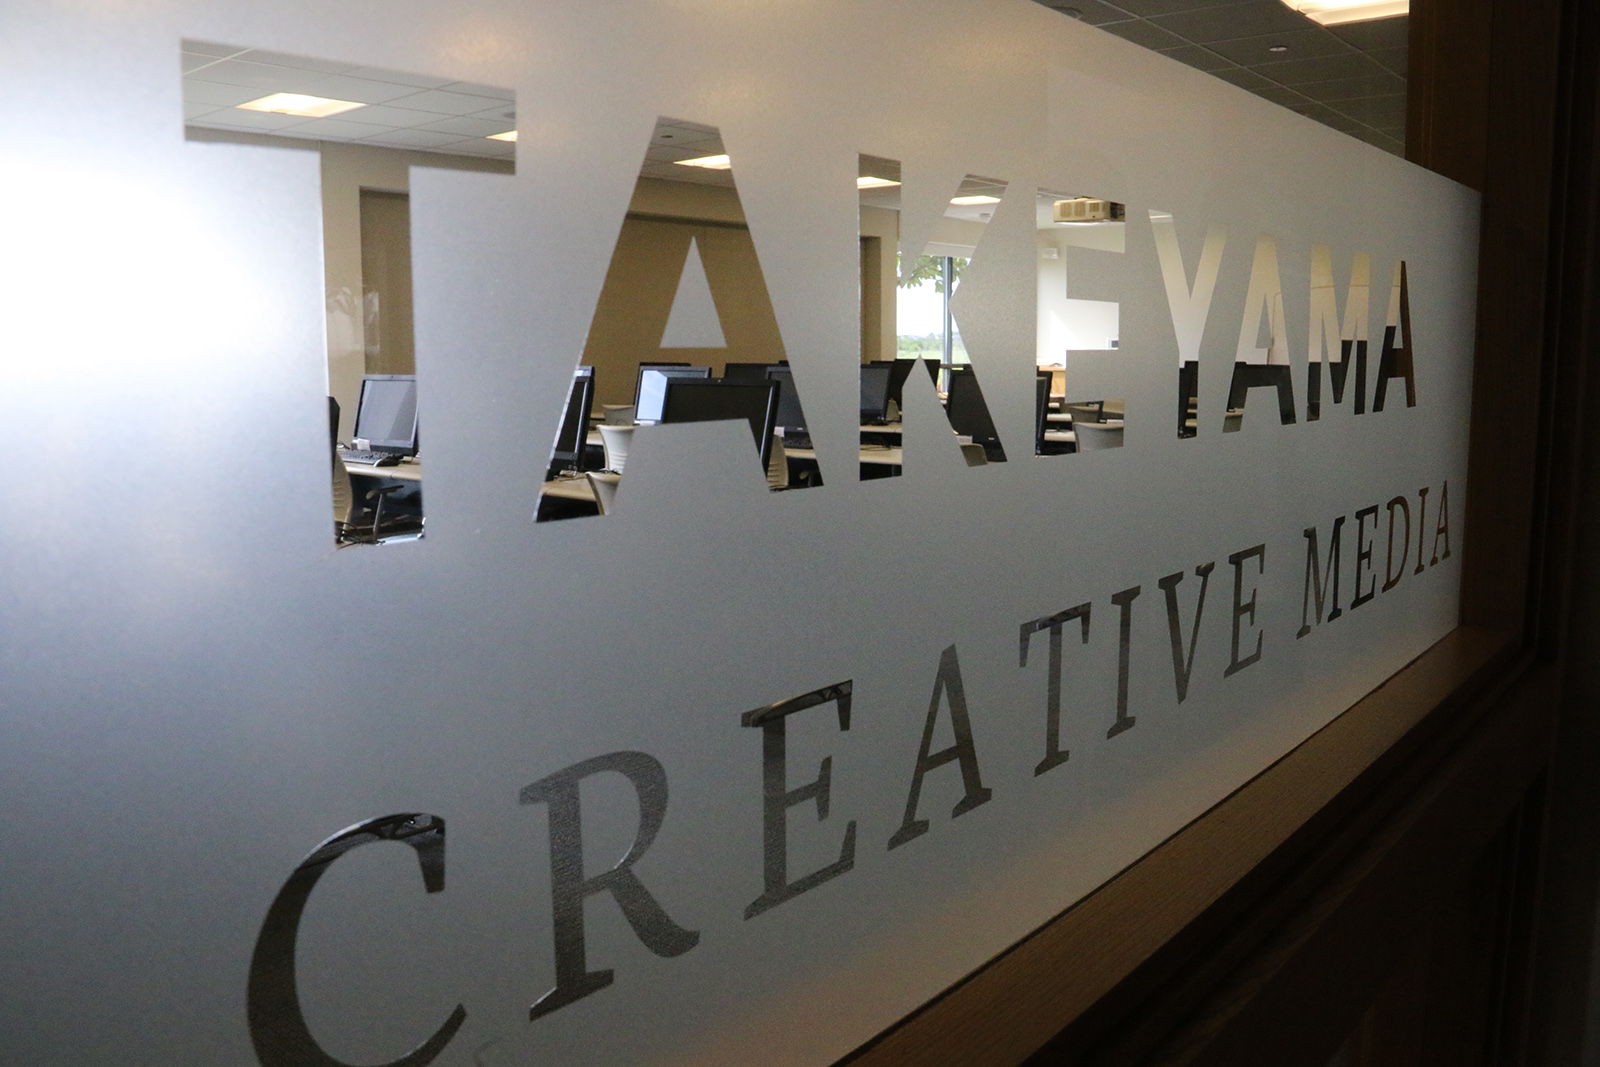 Takeyama Creative Media Lab